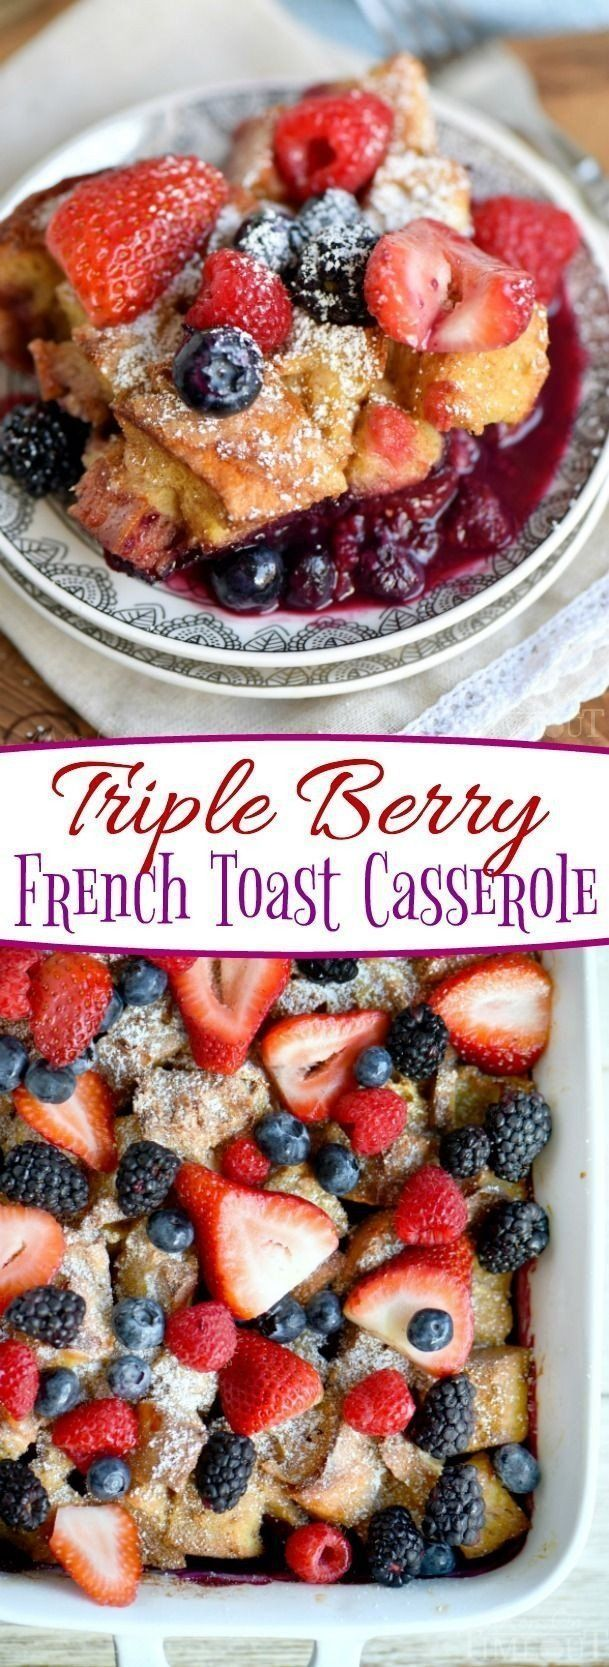 Photo of 40 Healthy Casserole Dish Recipes That Are Heavenly – Pretty Rad Lists